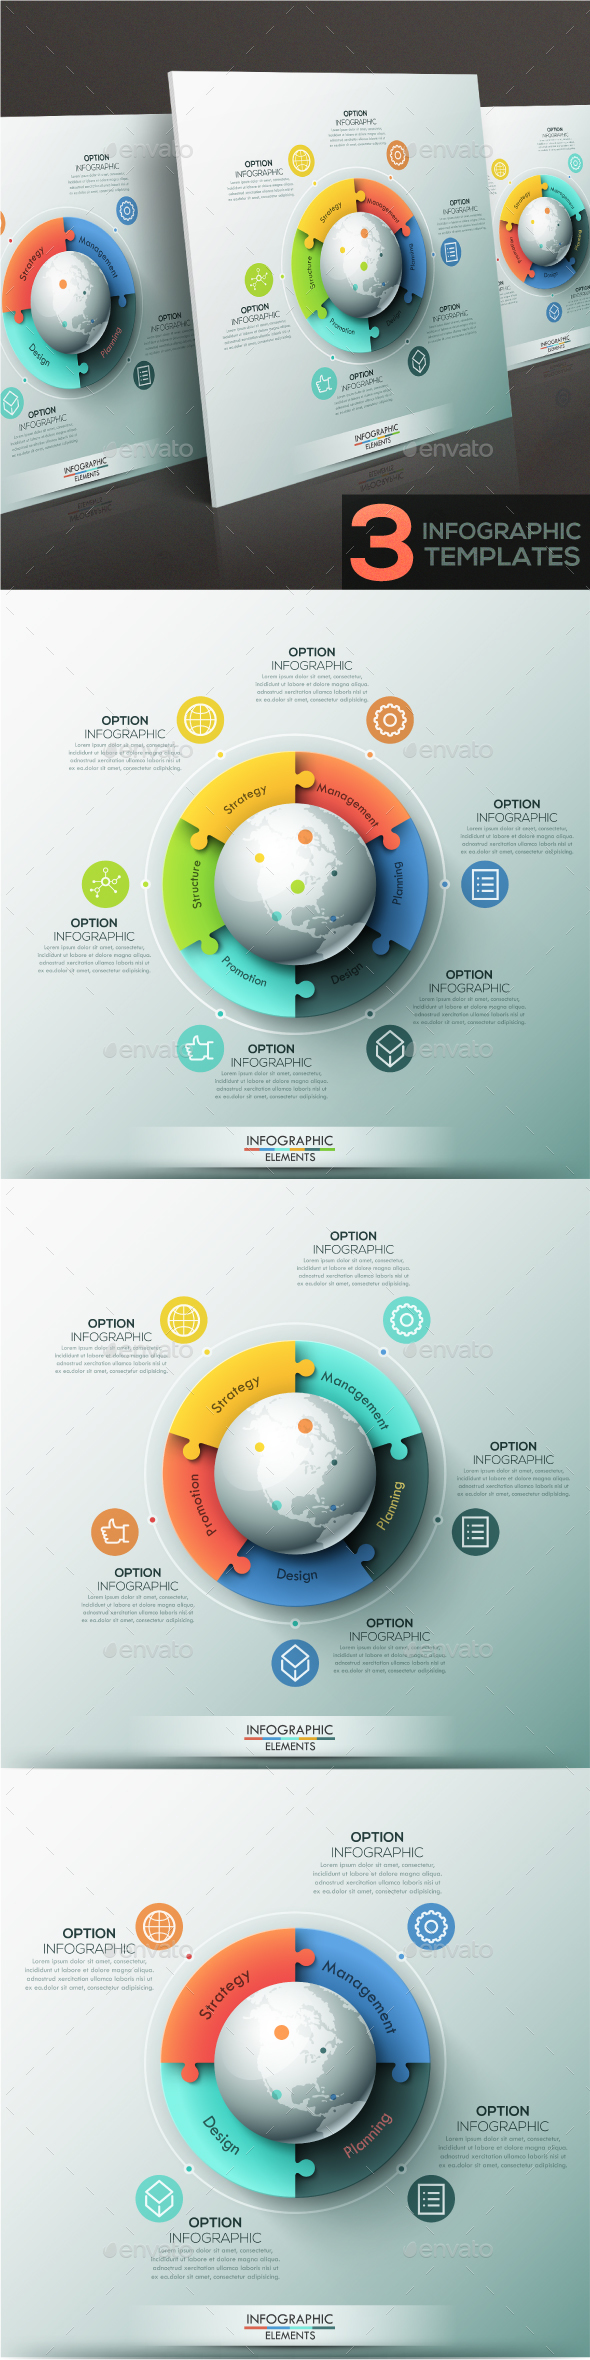 Modern Infographic Global Puzzle Templates (4 Items)3